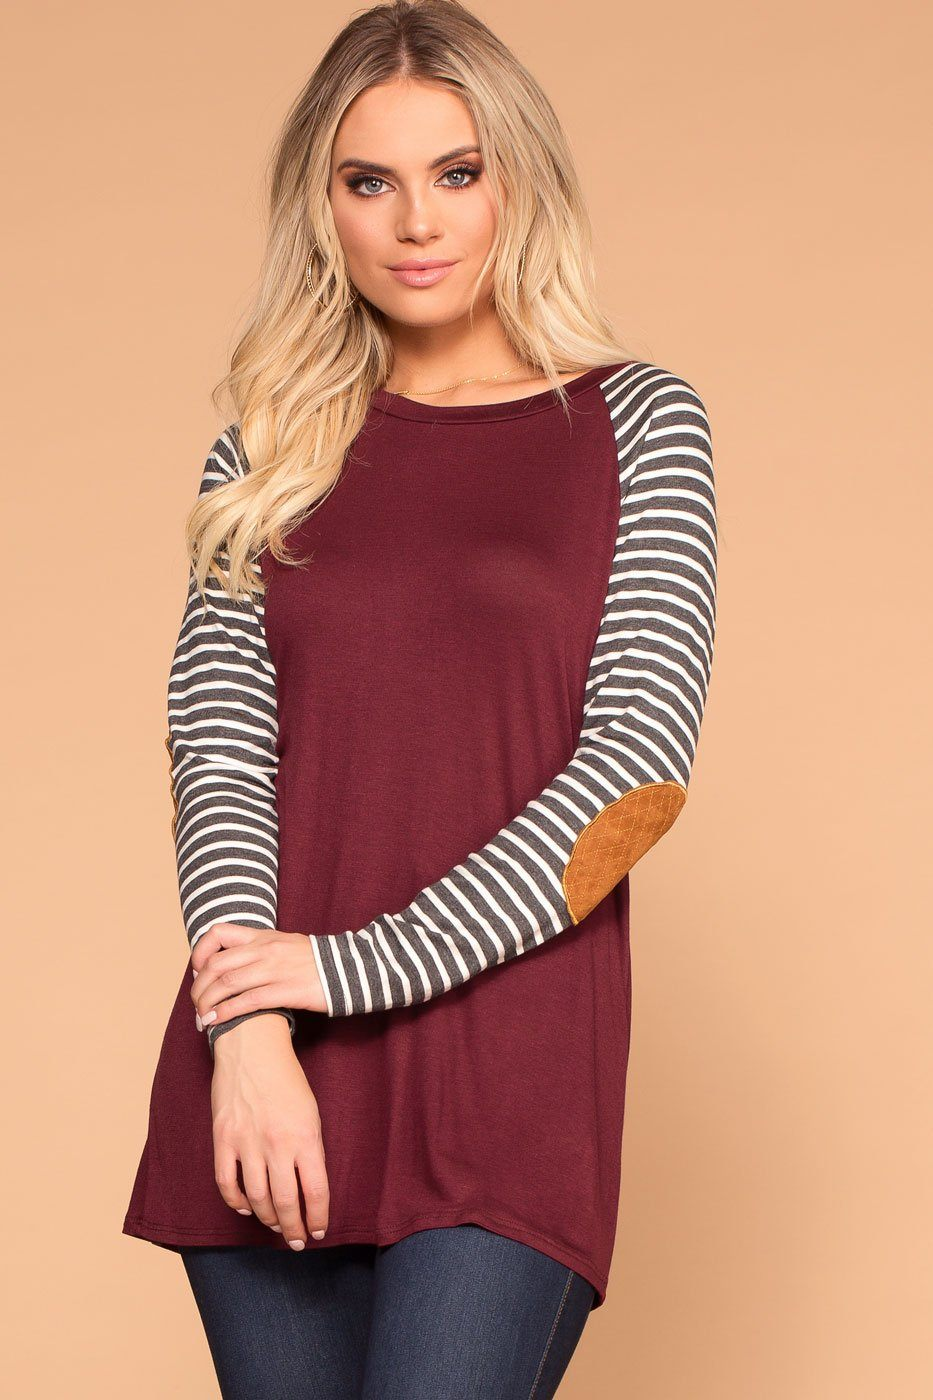 Priceless | Burgundy | Stripe Long Sleeve Top | Elbow patch Top | Womens